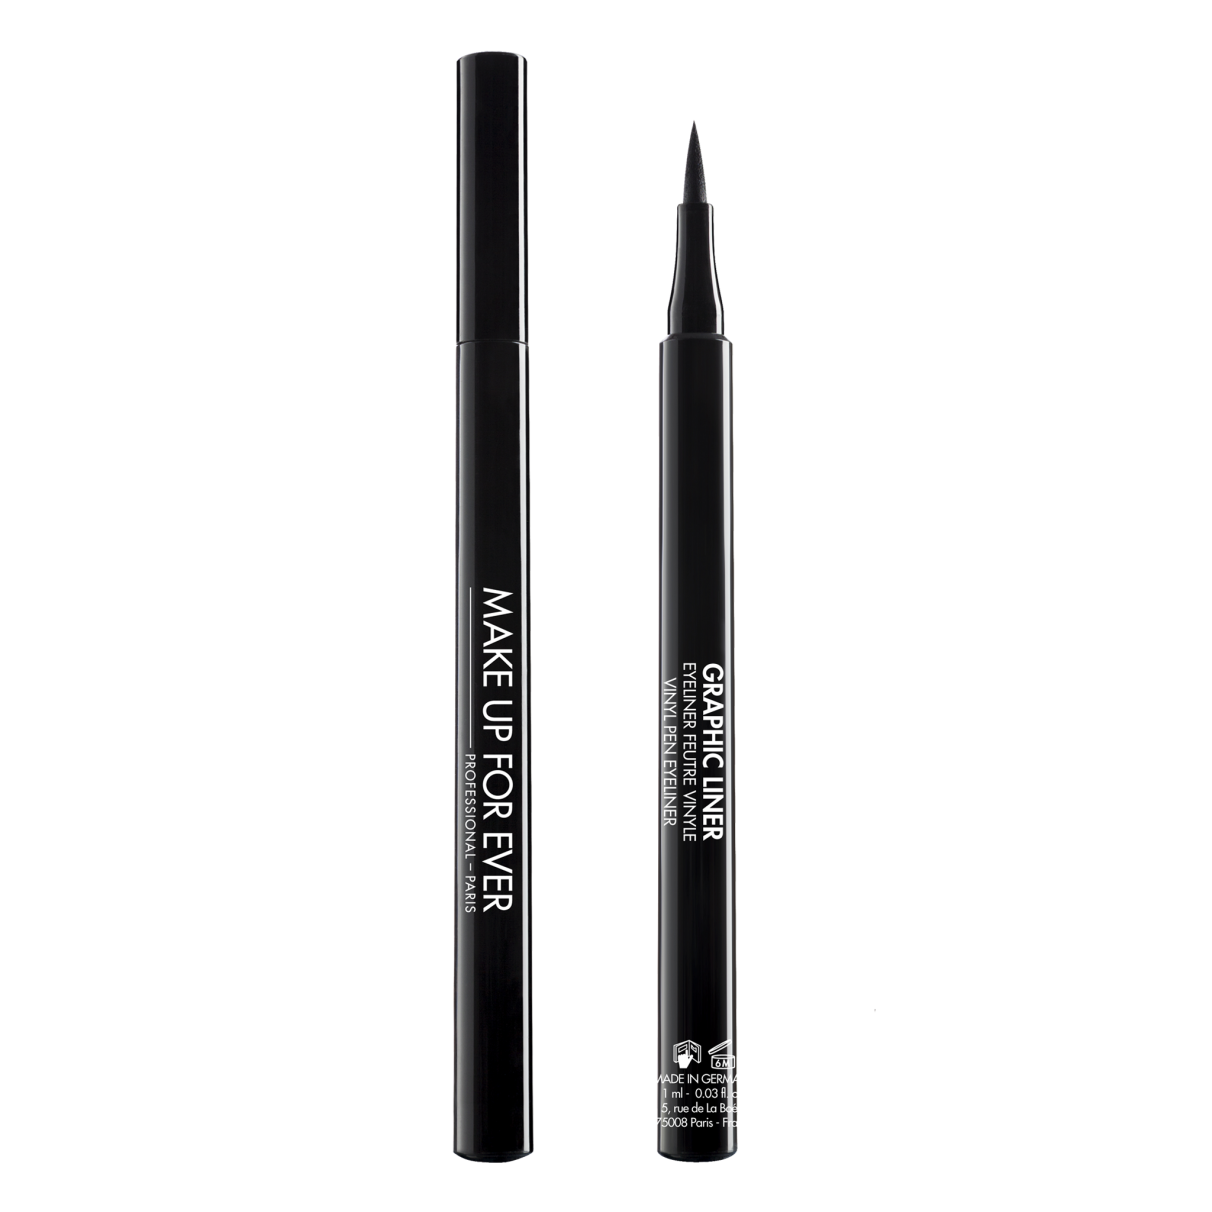 NEW! Make Up For Ever New Black Liners